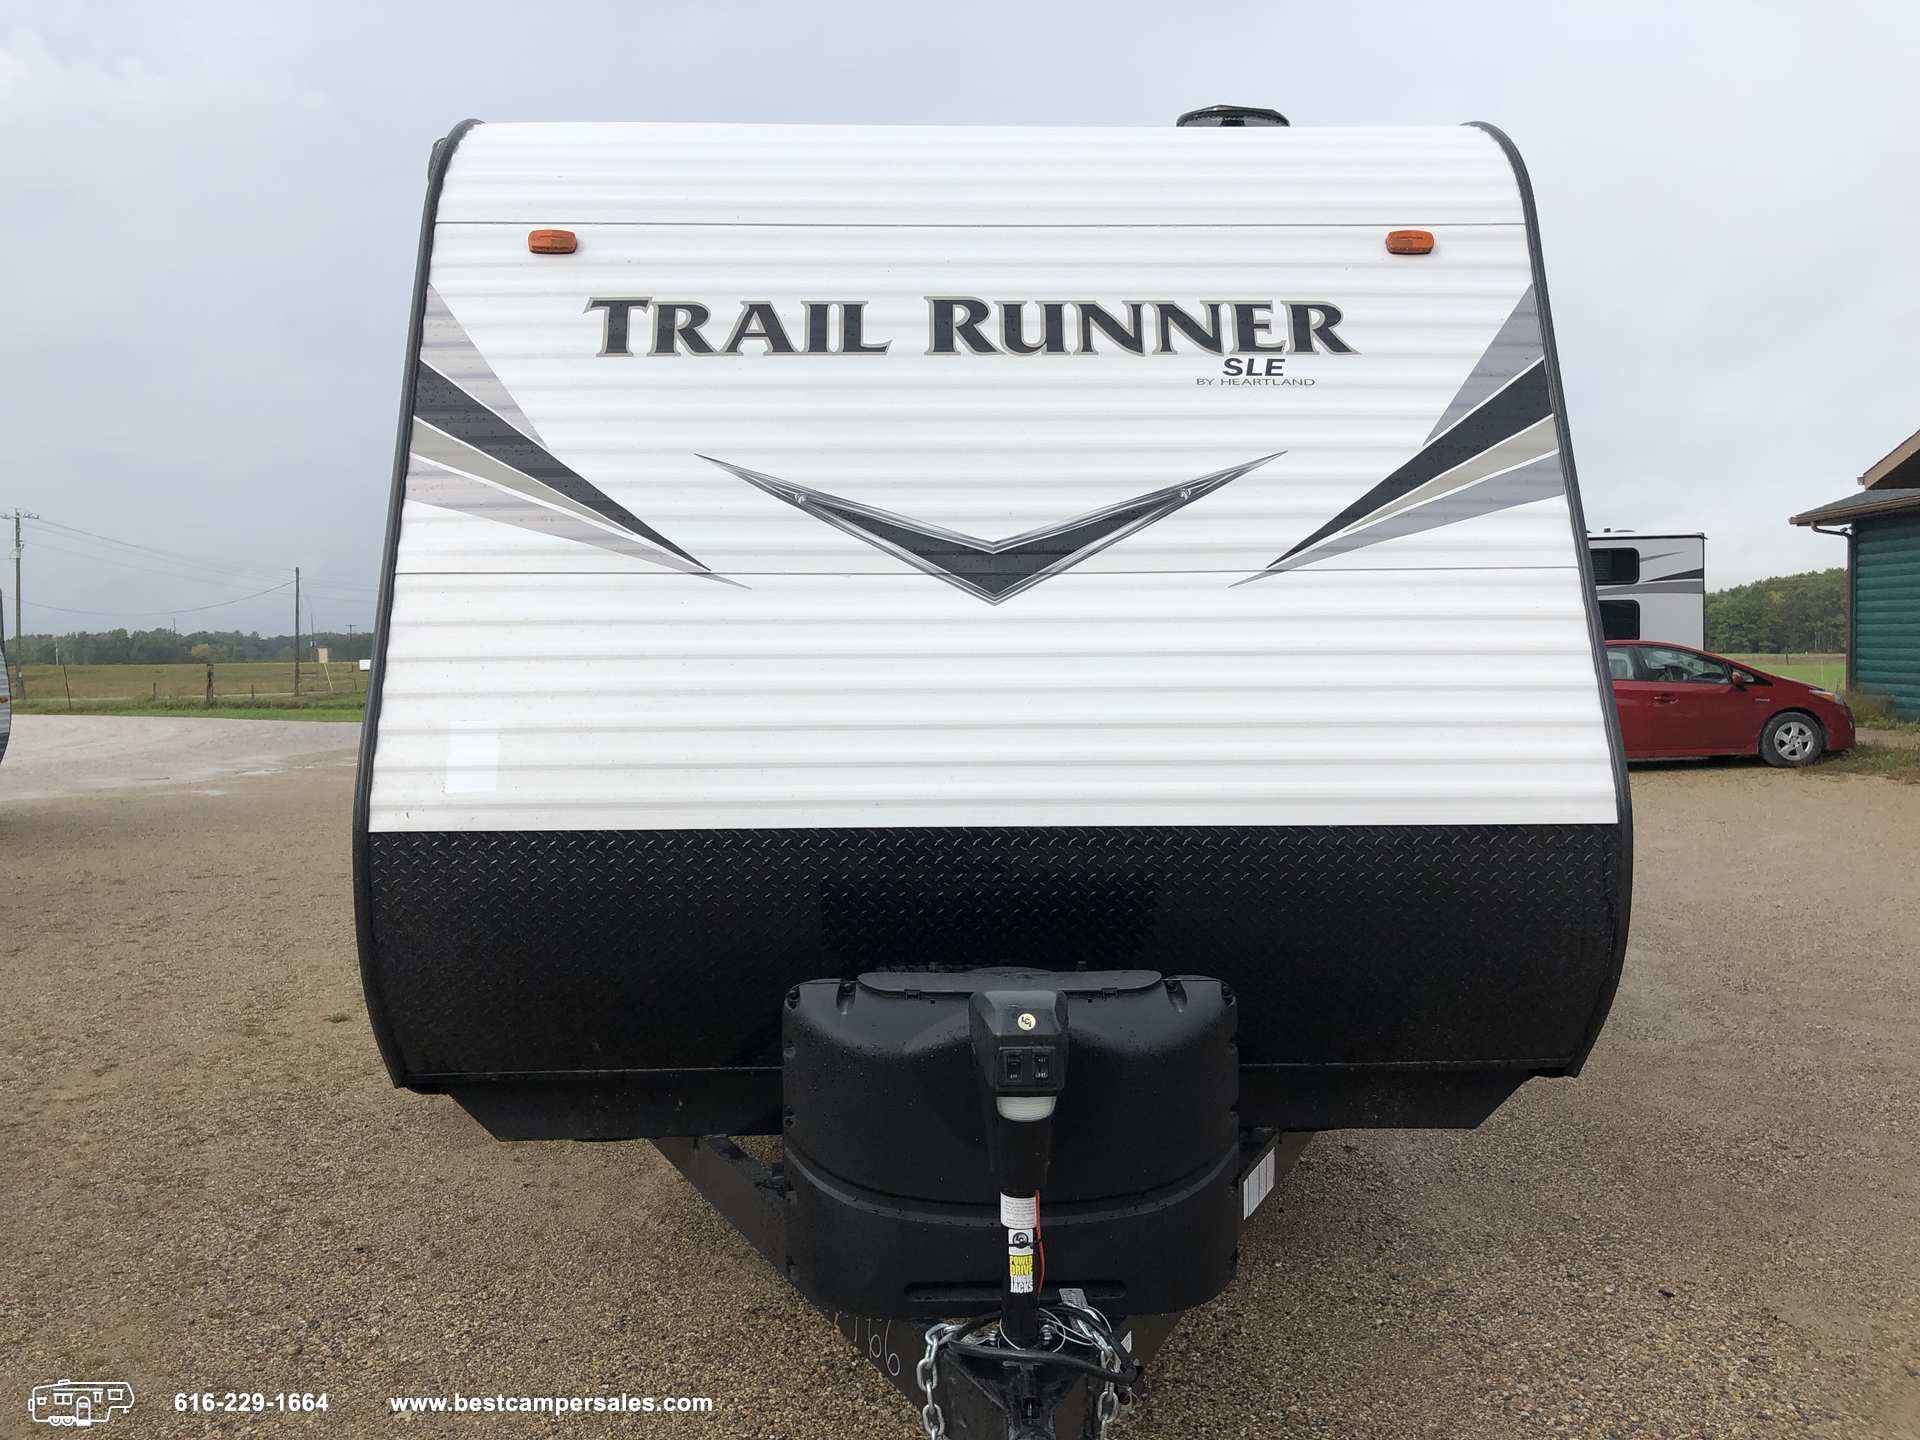 2019 Heartland Trail Runner SLE 18